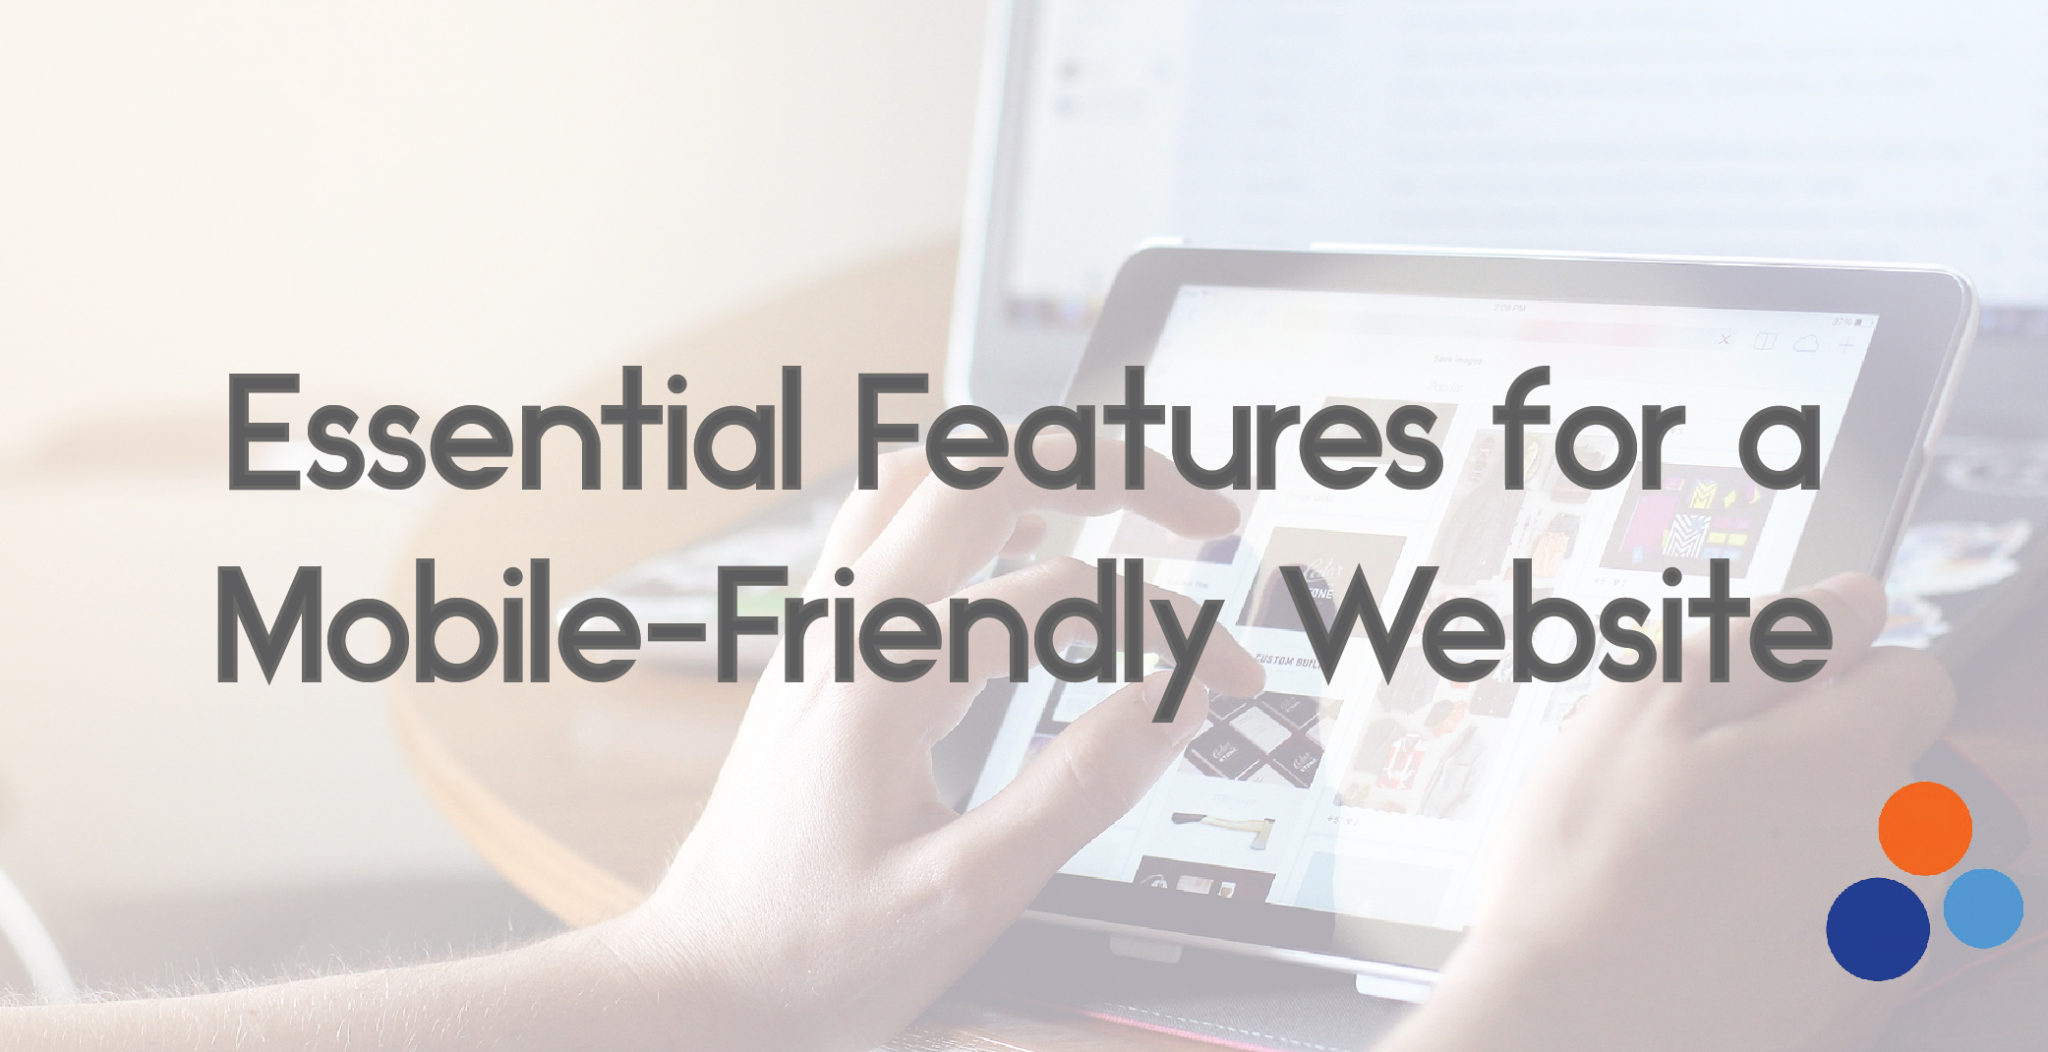 Essential Features for a Mobile-Friendly Website